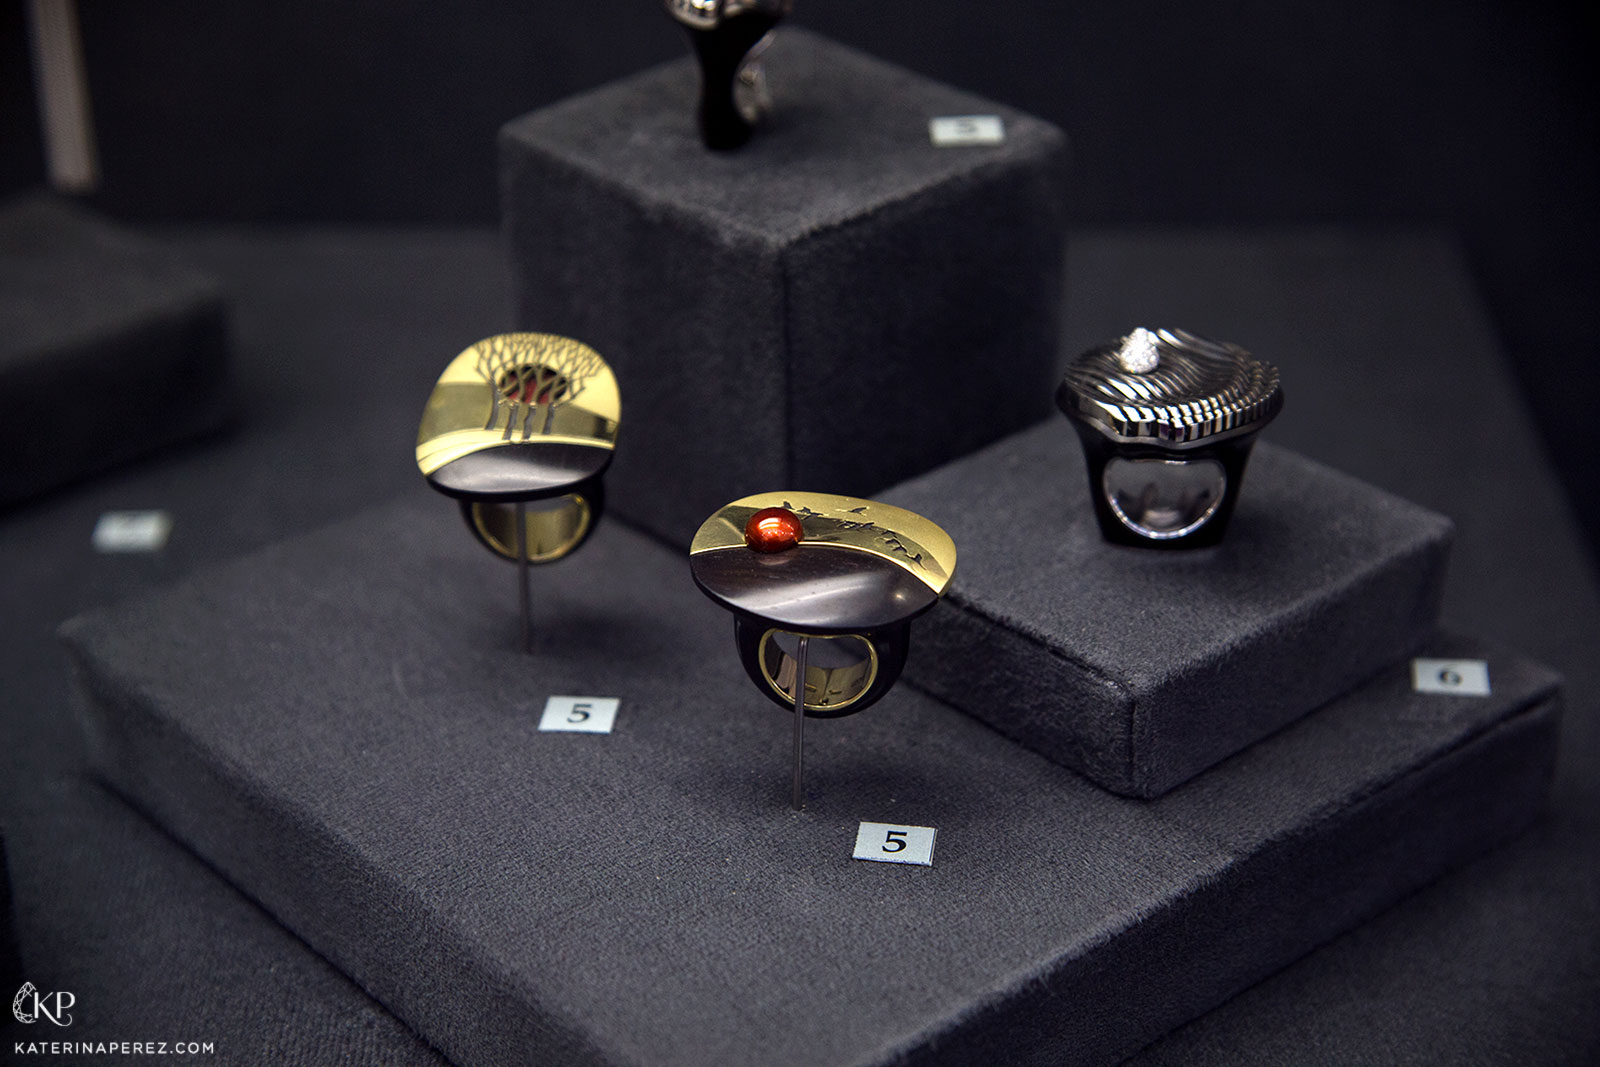 Rings created at 'Russian crafts' centre in Yaroslavl